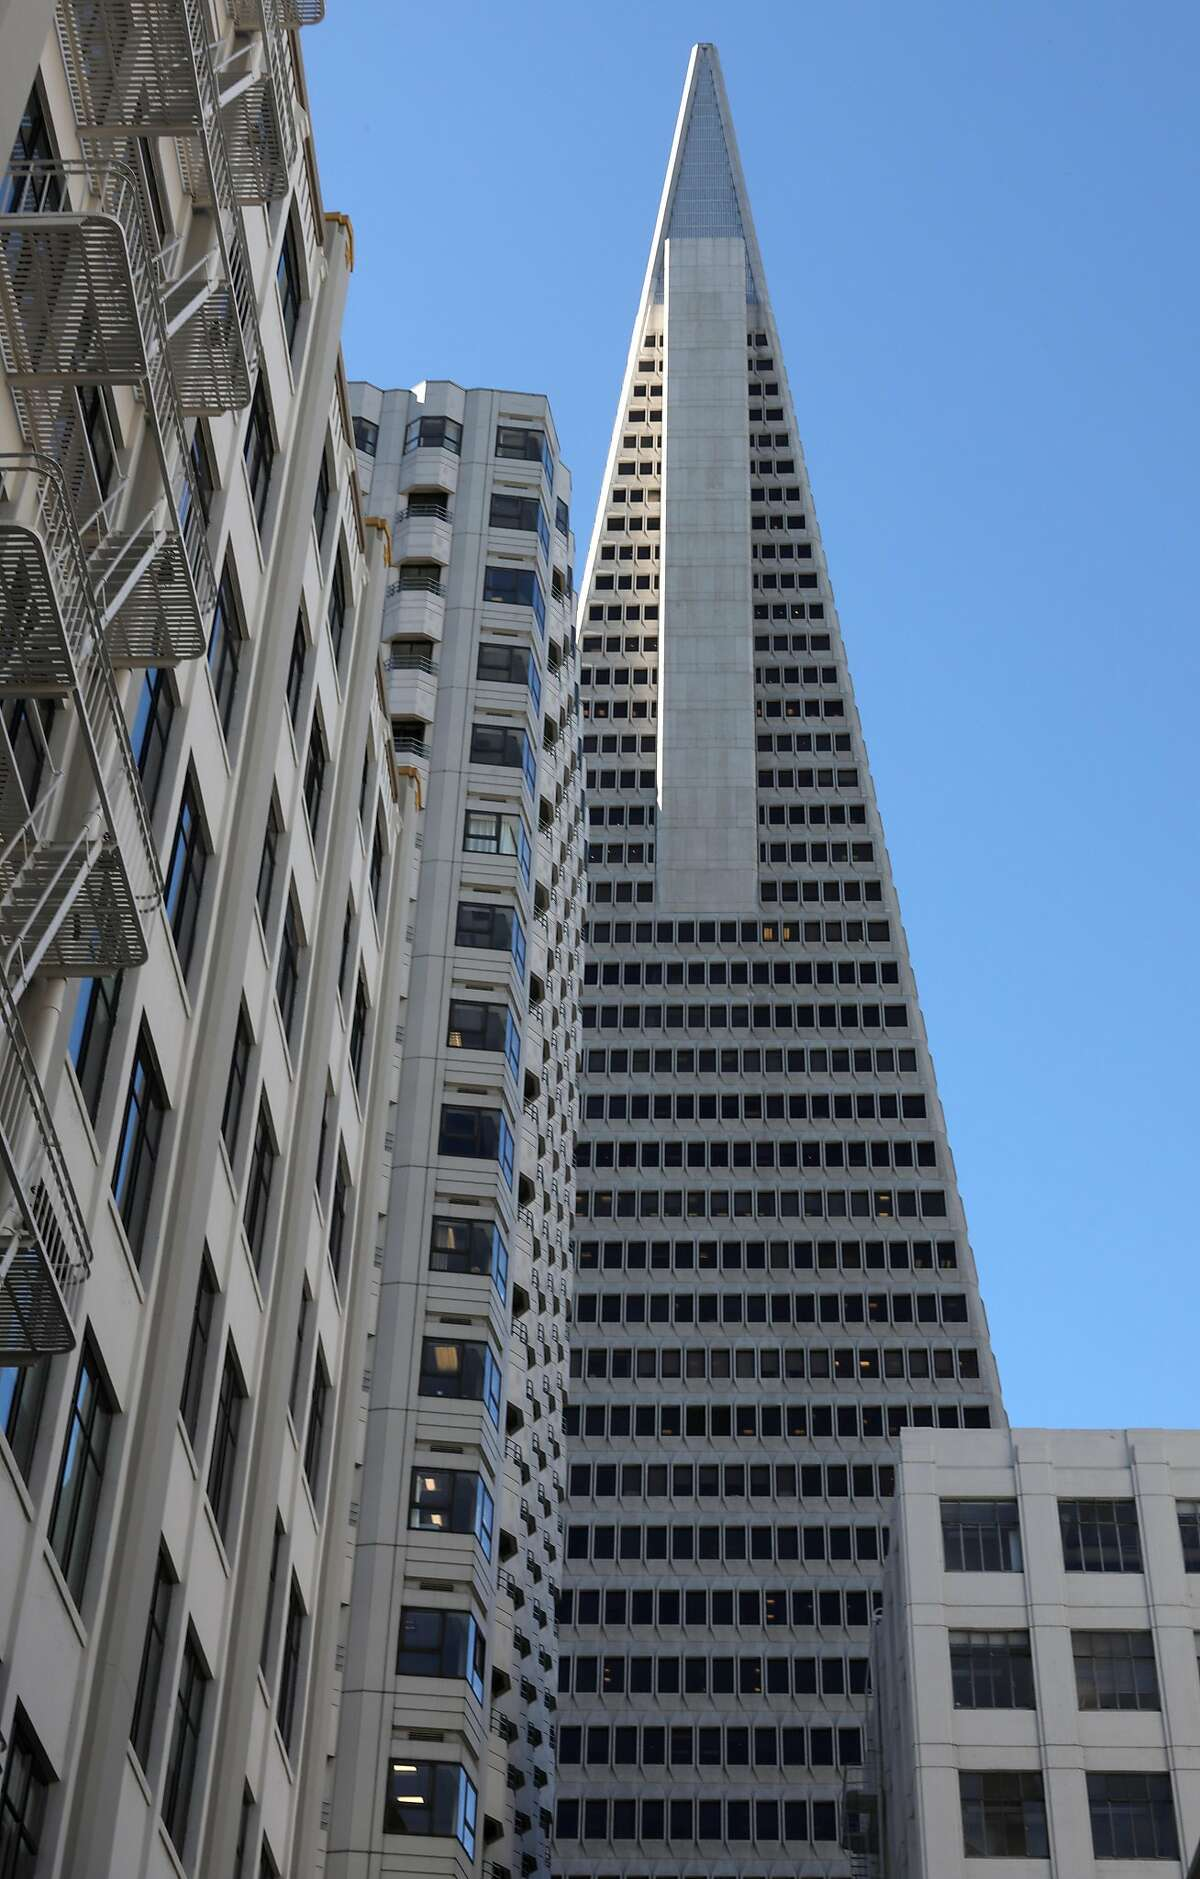 The Transamerica Pyramid (middle) with 505 Sansome St. (left of pyramid) and 545 Sansome St. (lower right of pyramid) are nearing a sale on Monday, Feb. 3, 2020, in San Francisco, Calif.